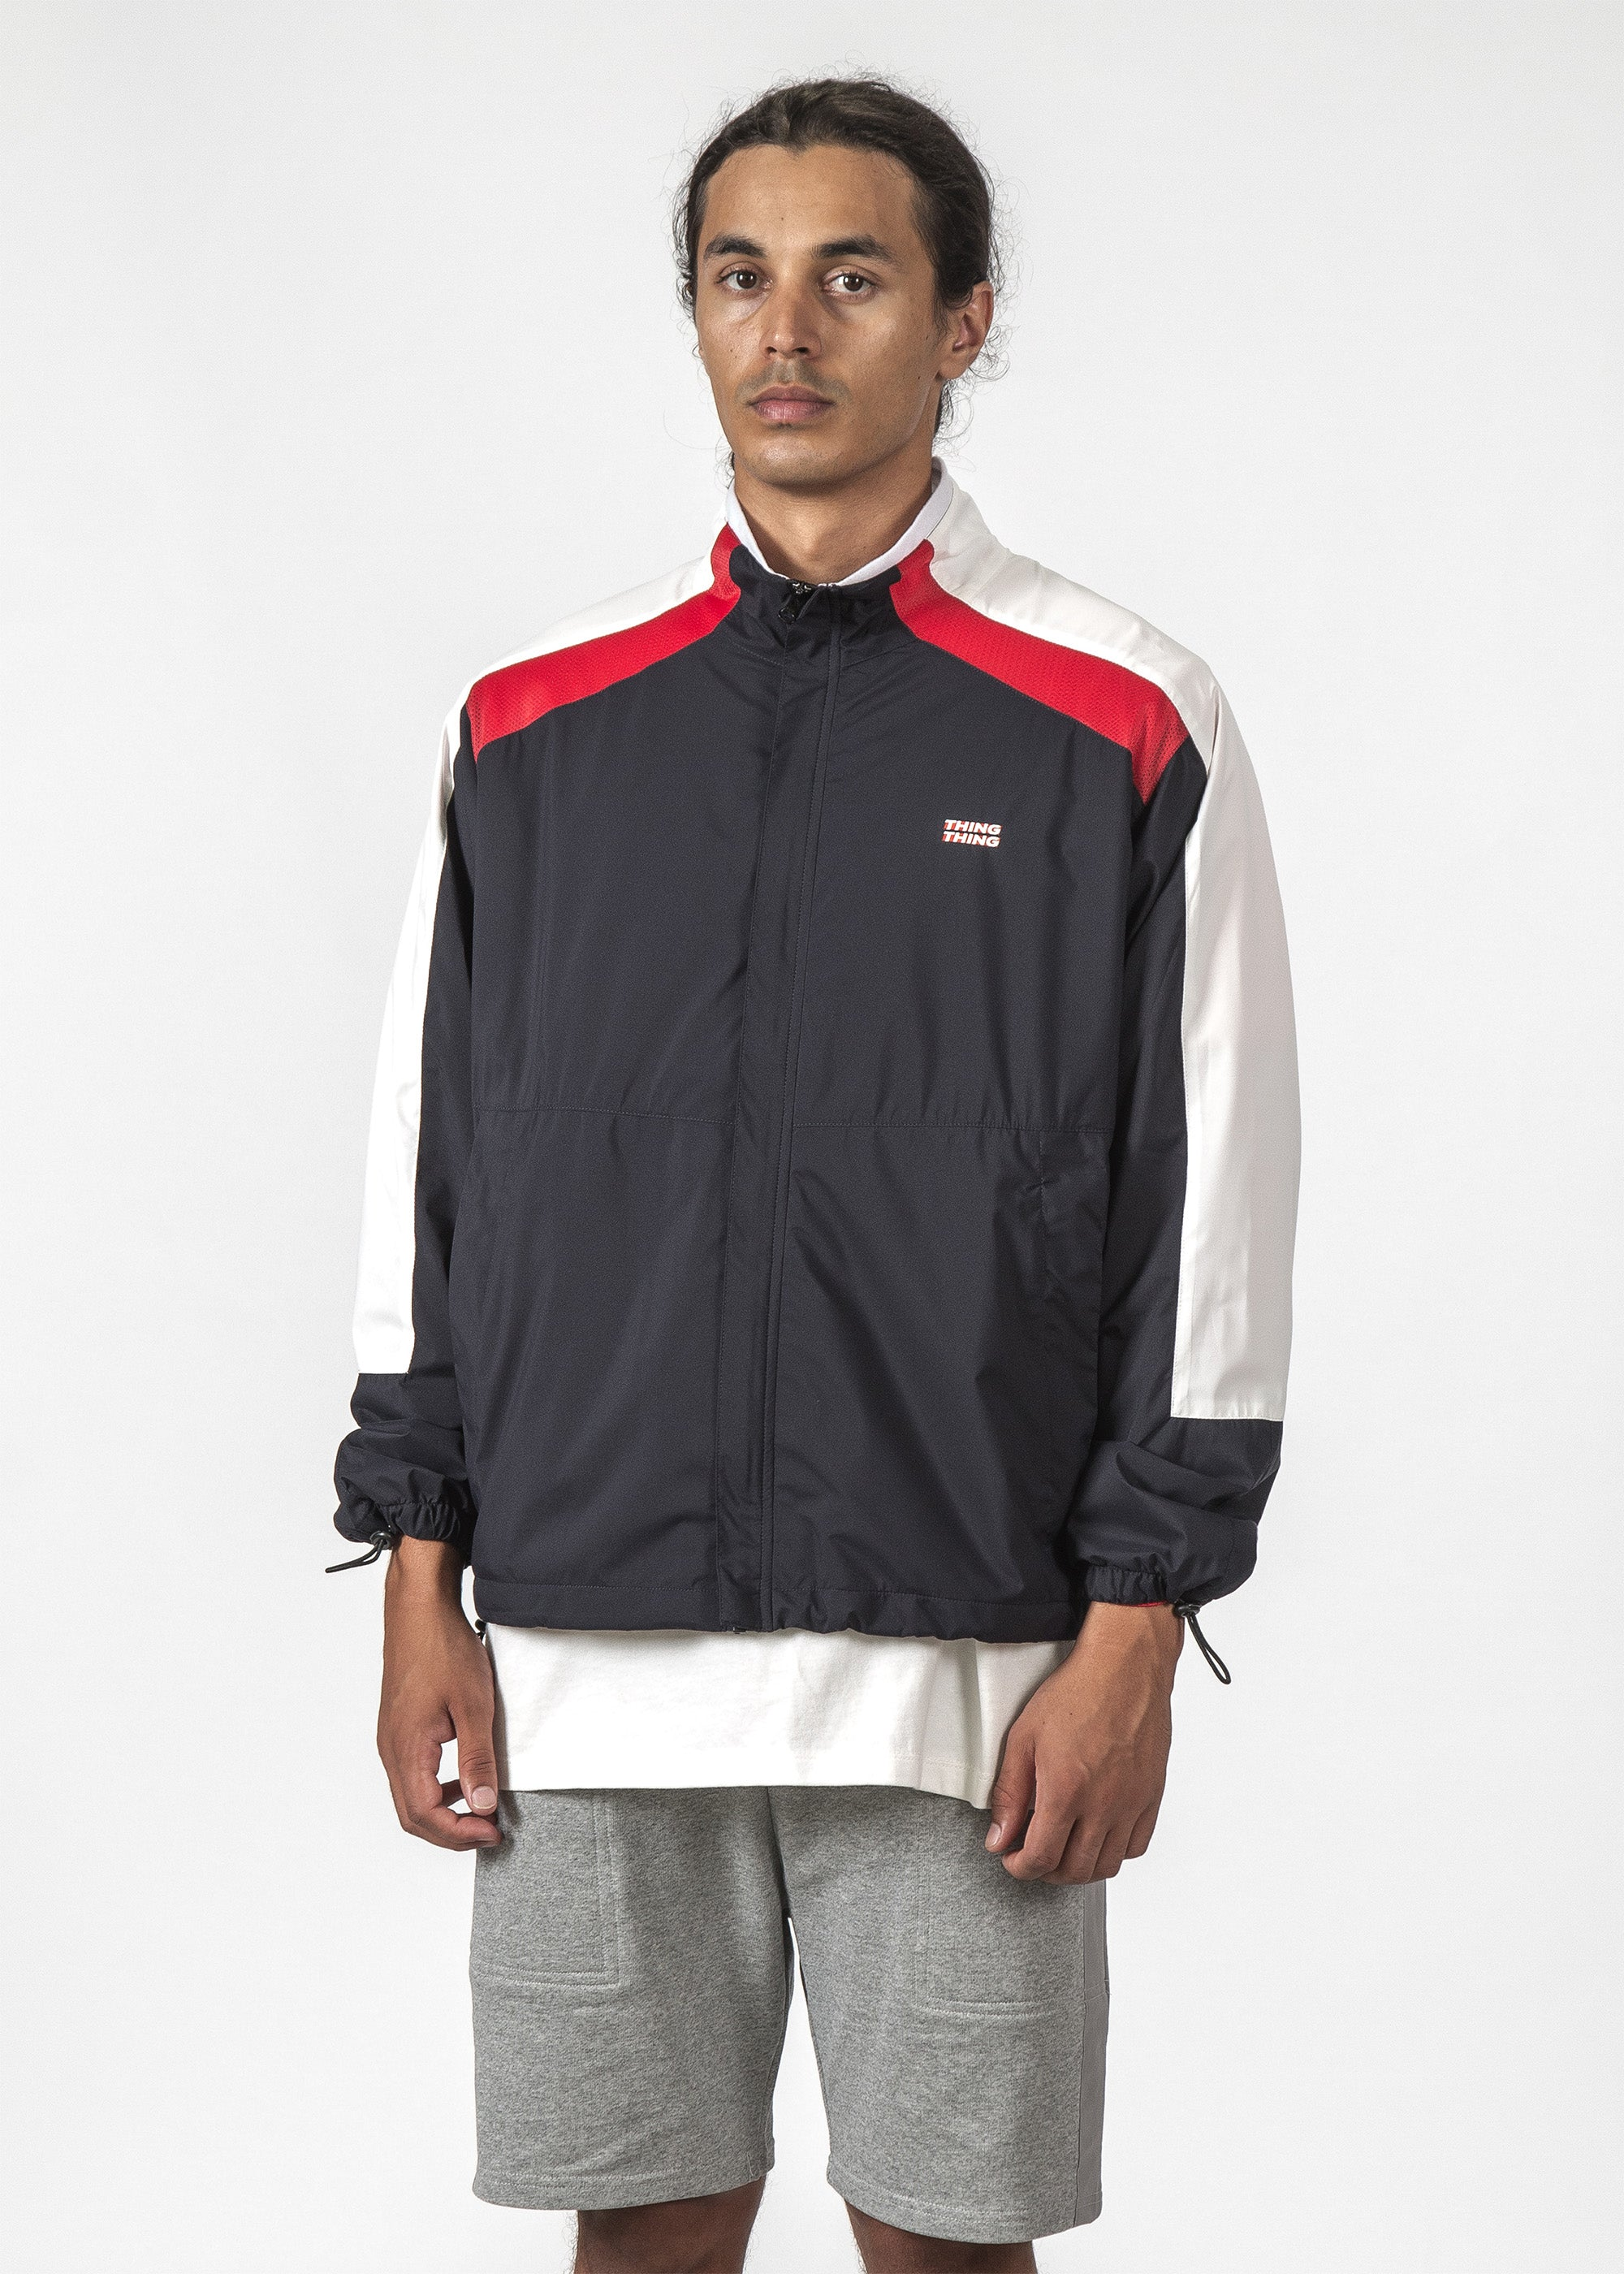 THE METRIC JACKET NAVY/RED/WHITE